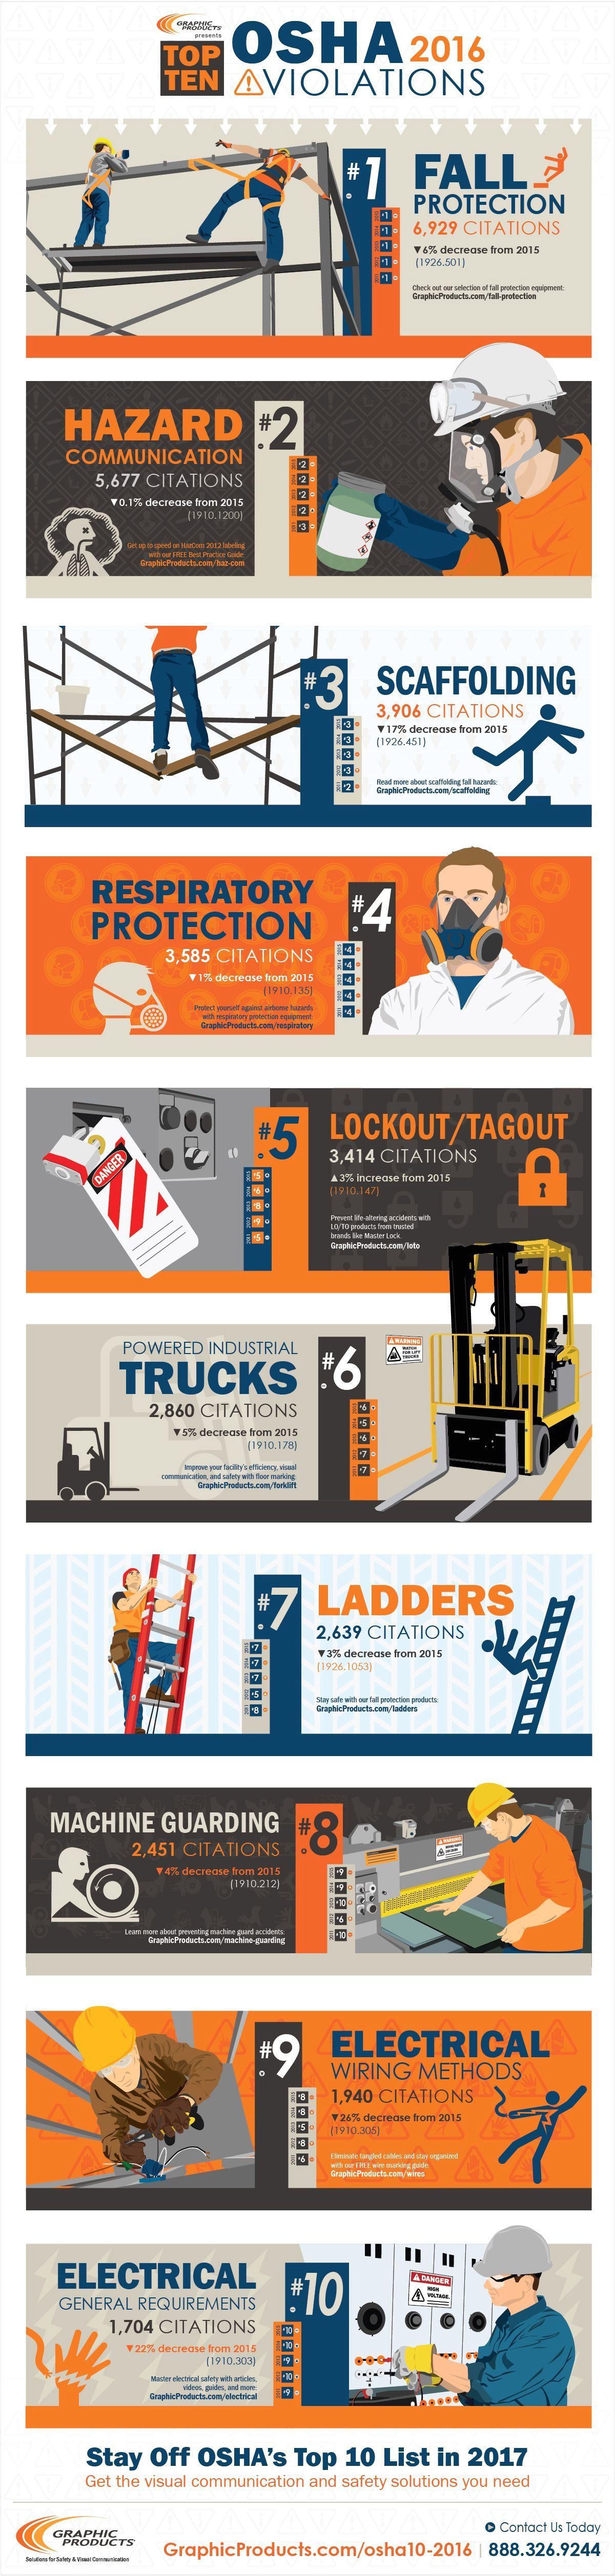 Osha Safety Posters Health and safety poster, Workplace